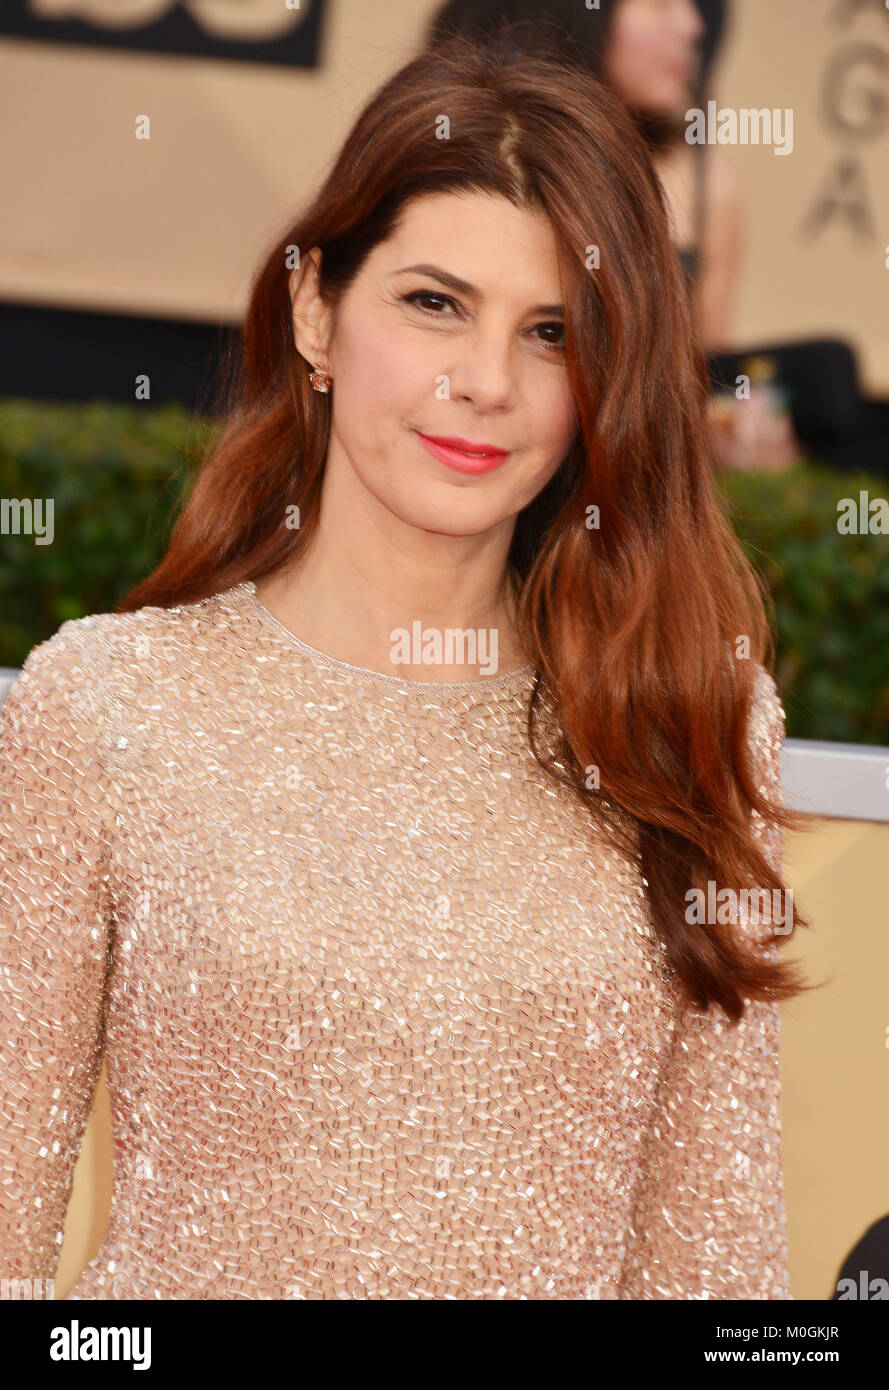 Los Angeles, USA. 21st Jan, 2018. Marisa Tomei 152 attends the 24th Annual Screen Actors Guild Awards at The Shrine - Stock Image